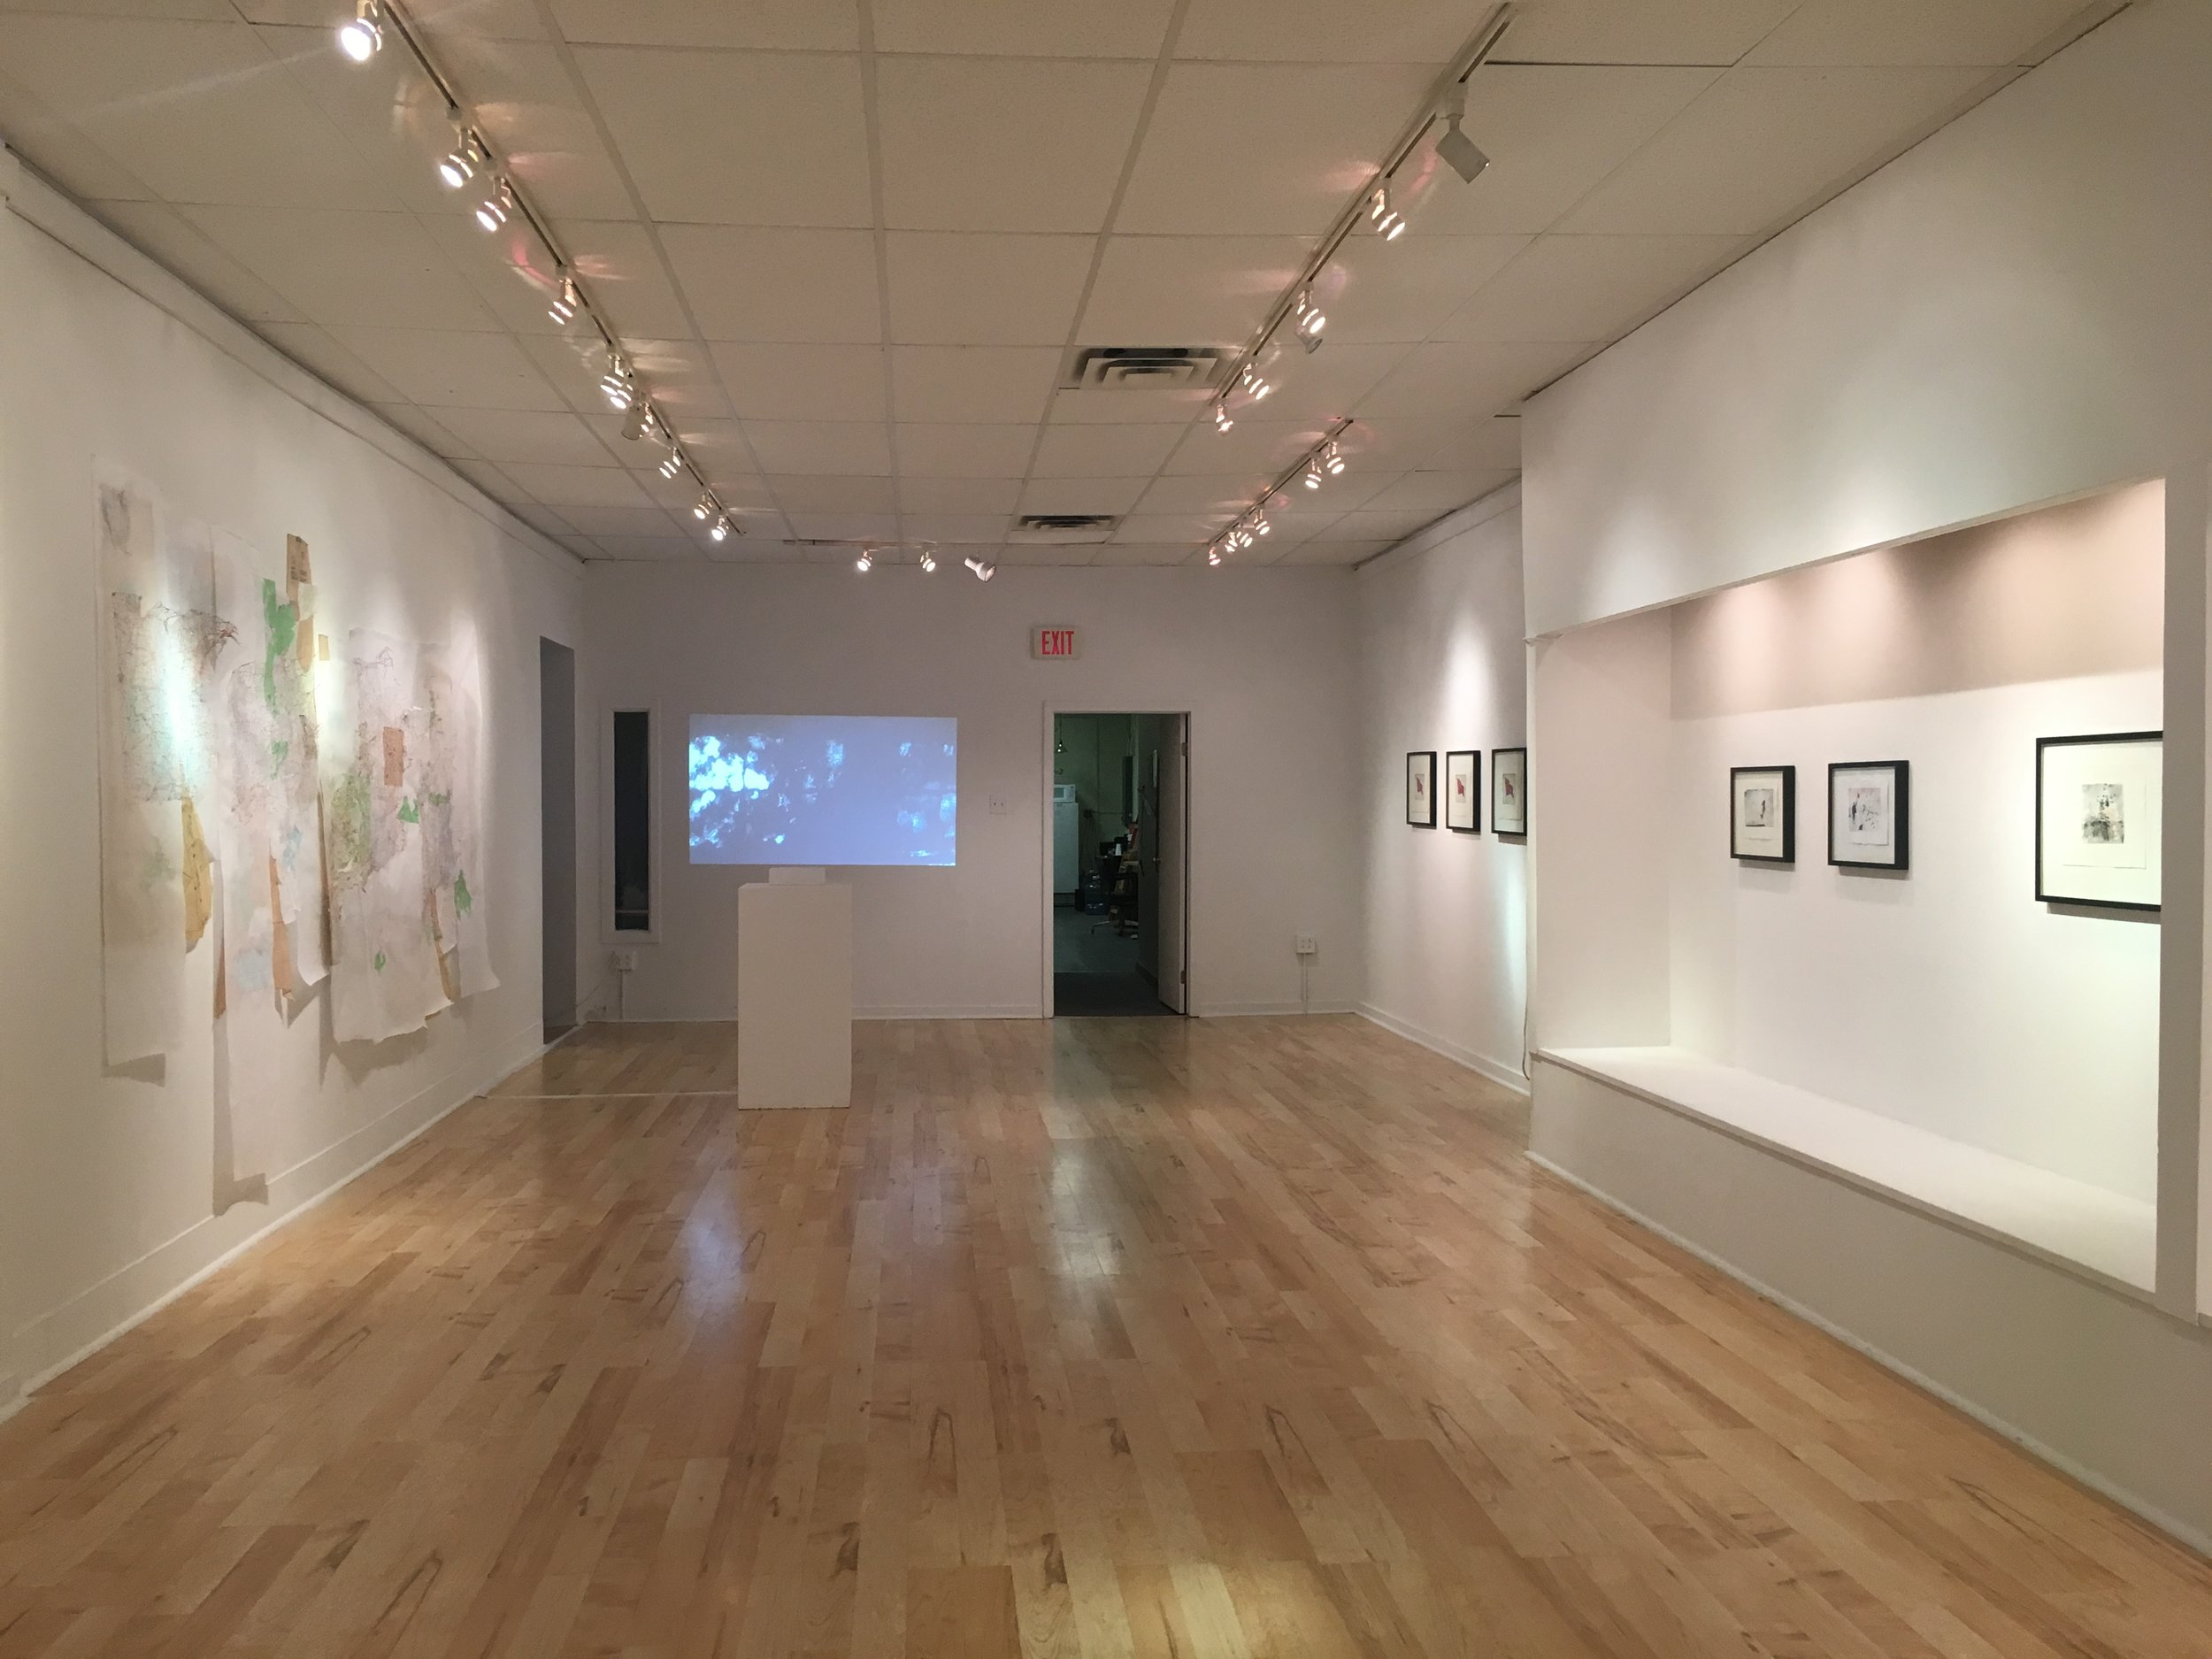 Gallery 51, install view